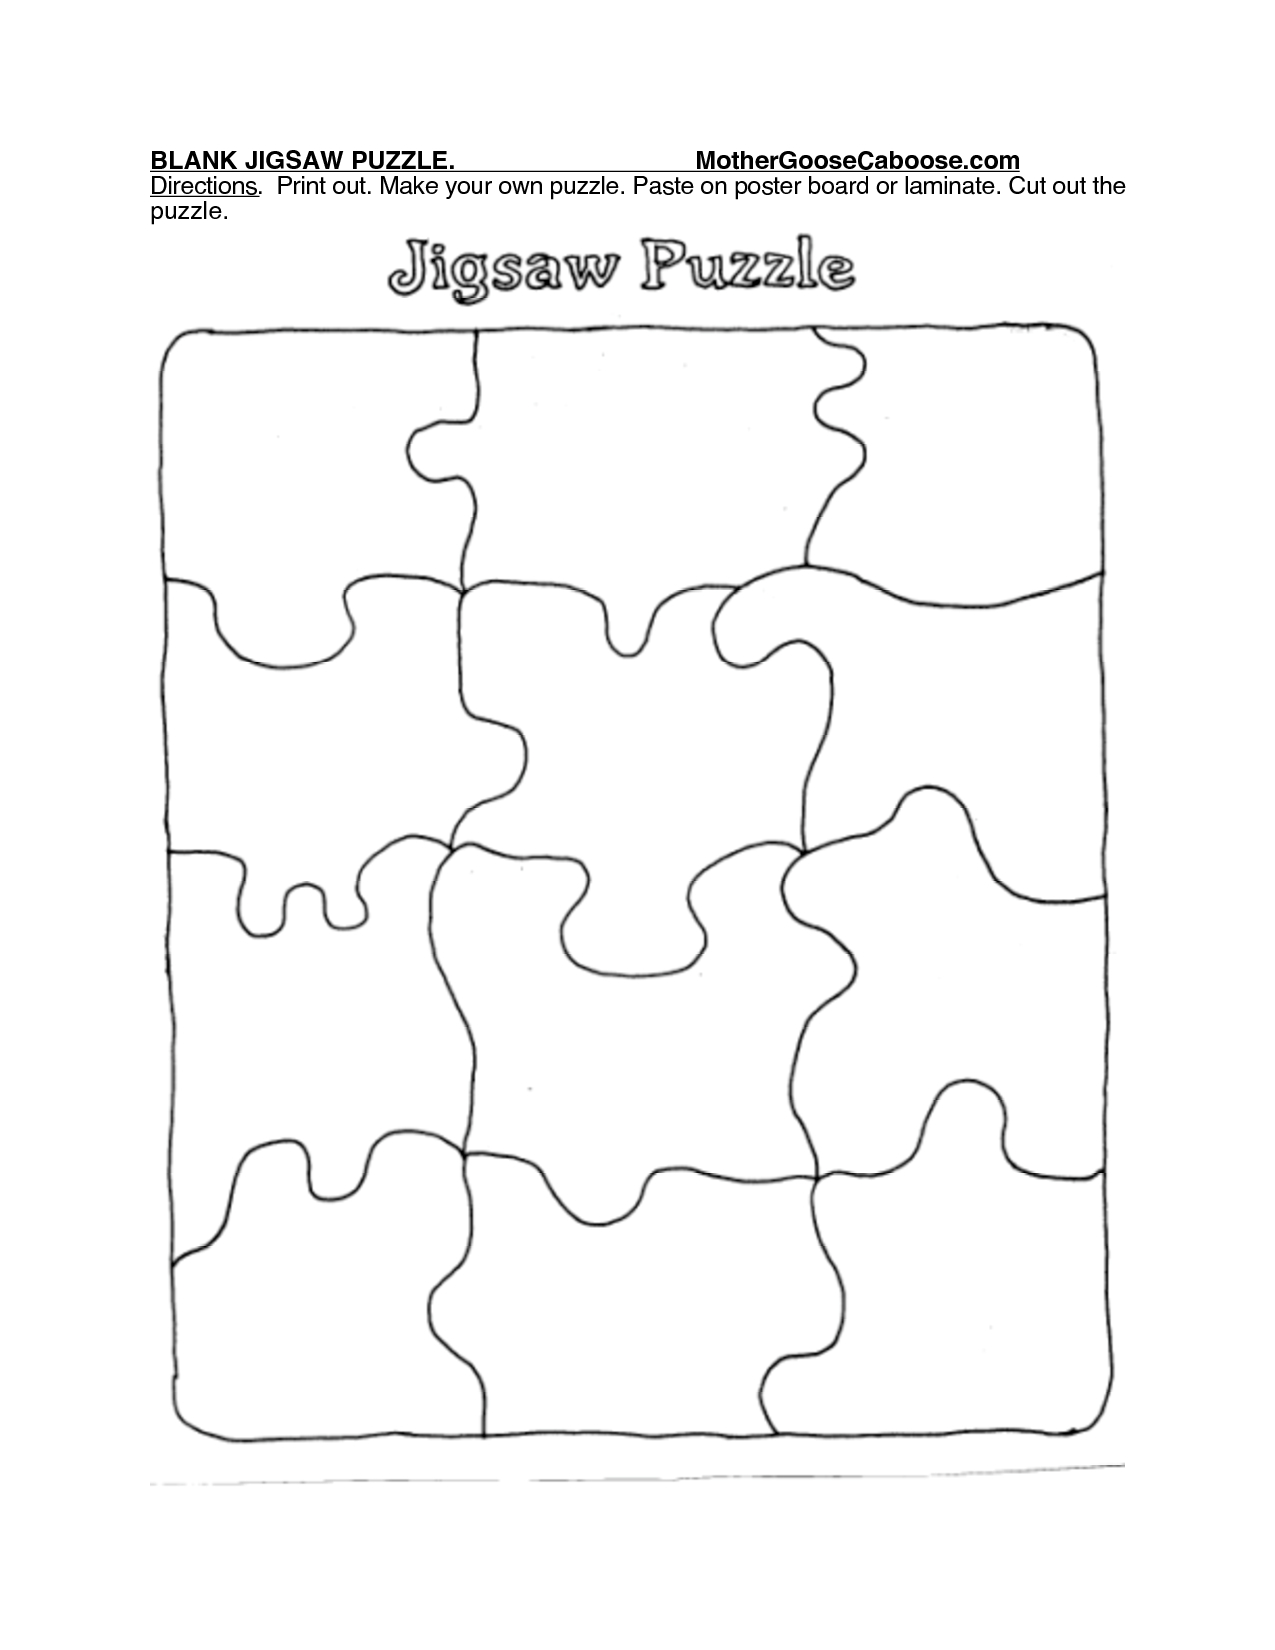 Printable Puzzle Piece Template | Search Results | New Calendar - Printable 8 Piece Jigsaw Puzzle